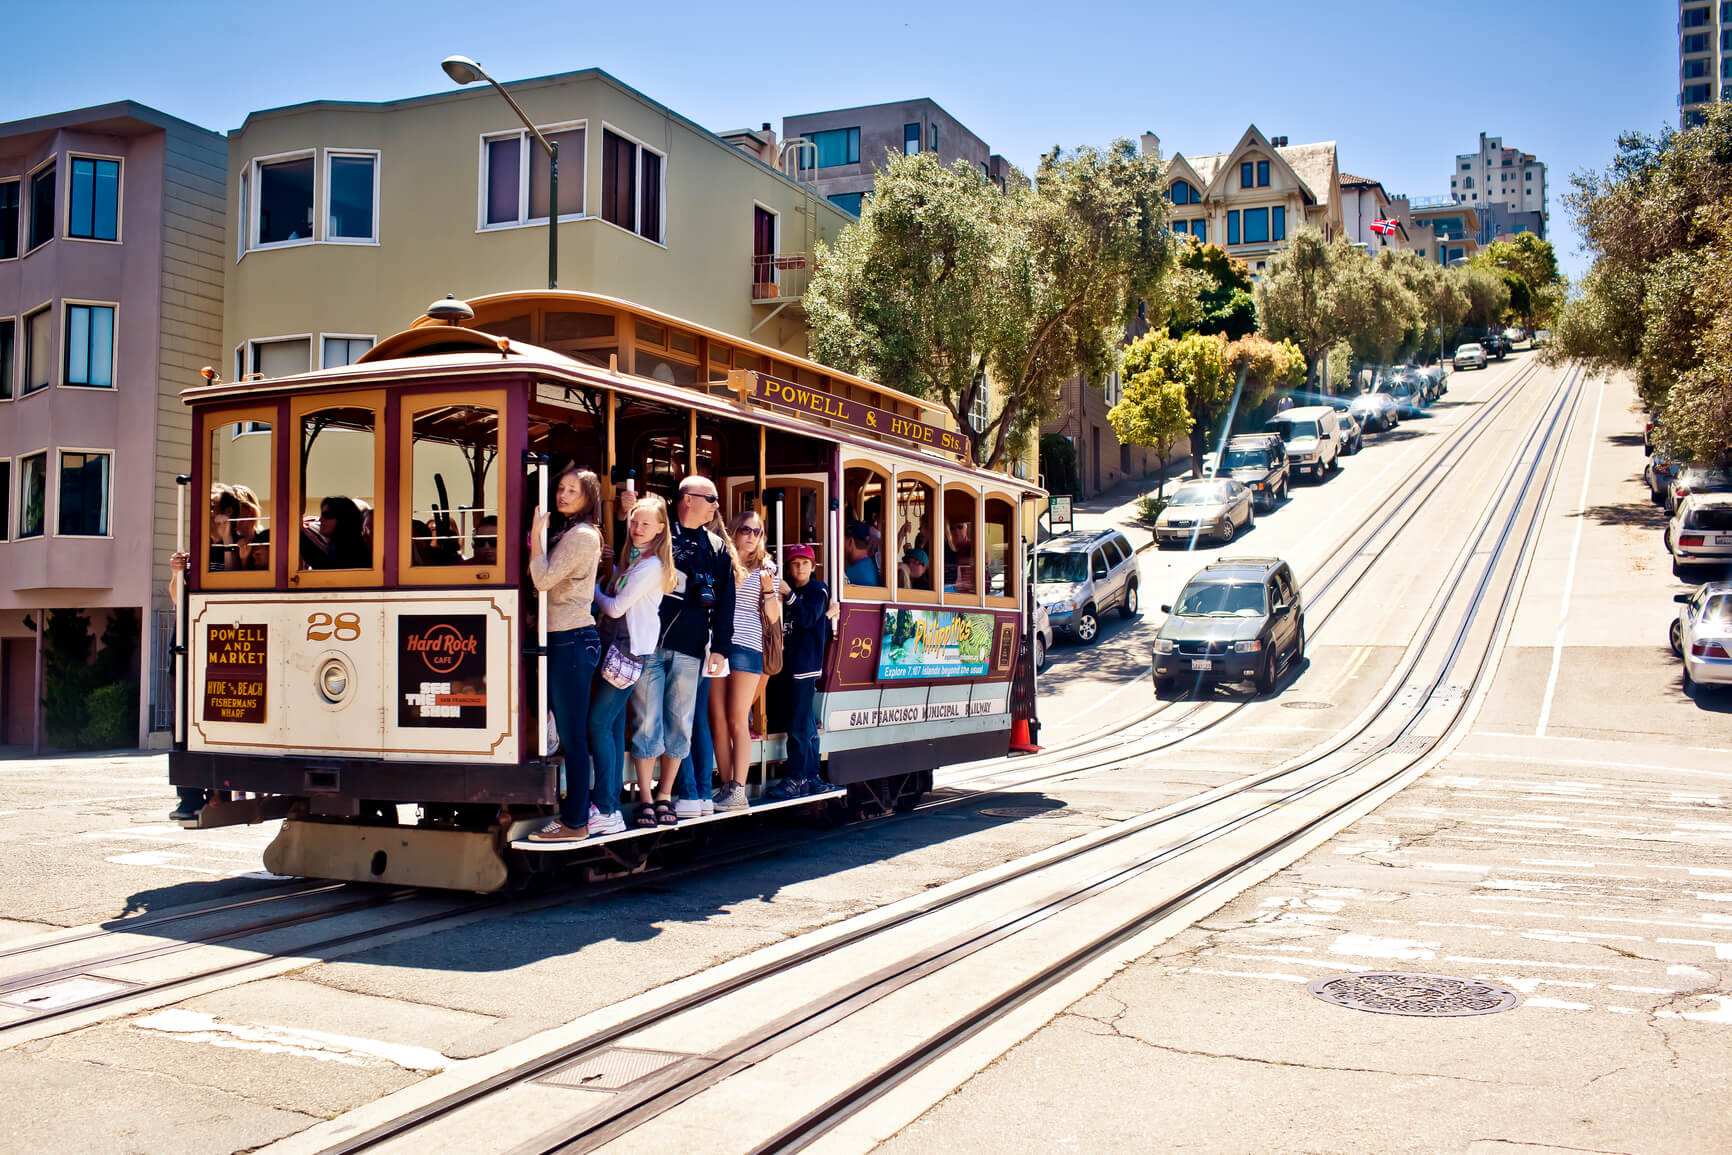 Non-stop from Miami to San Francisco (& vice versa) for only $173 roundtrip (Jun-Jul dates)